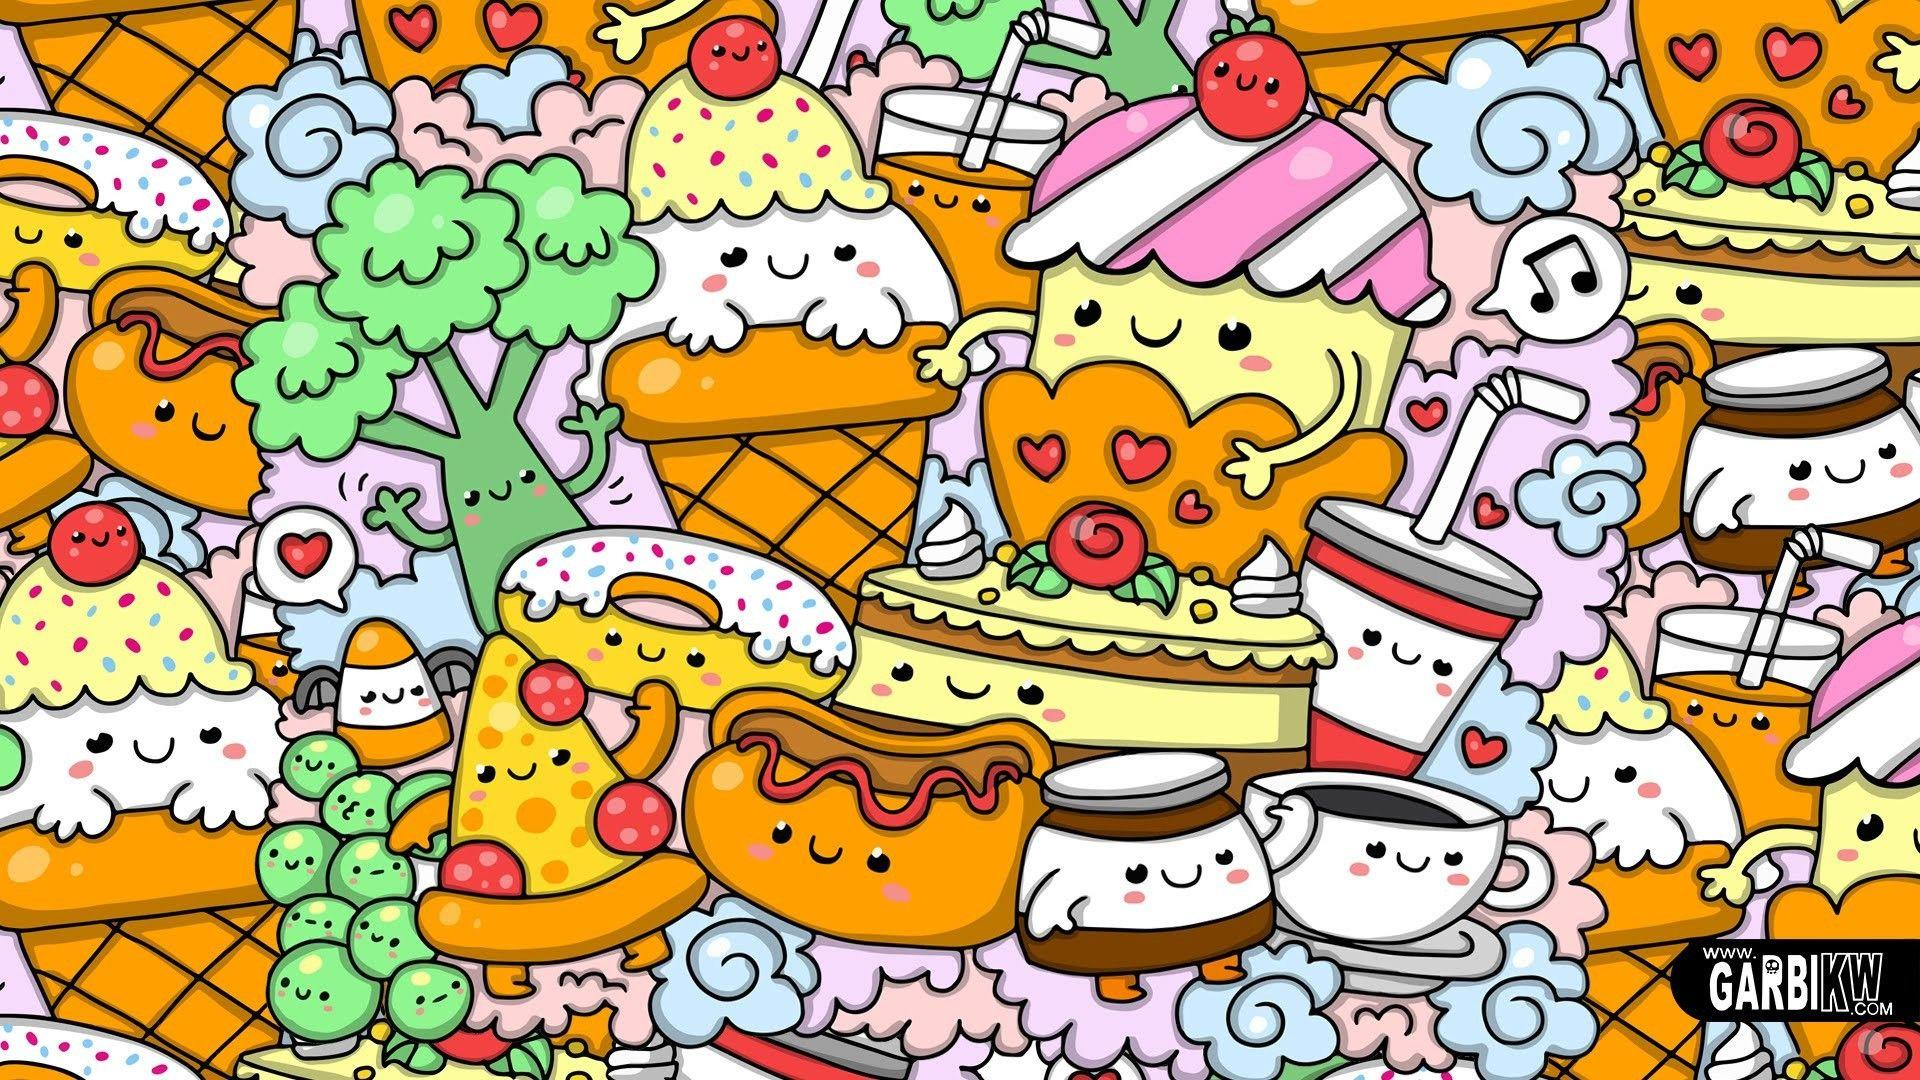 Cartoon food wallpapers wallpaper cave - Kawaii food wallpaper ...